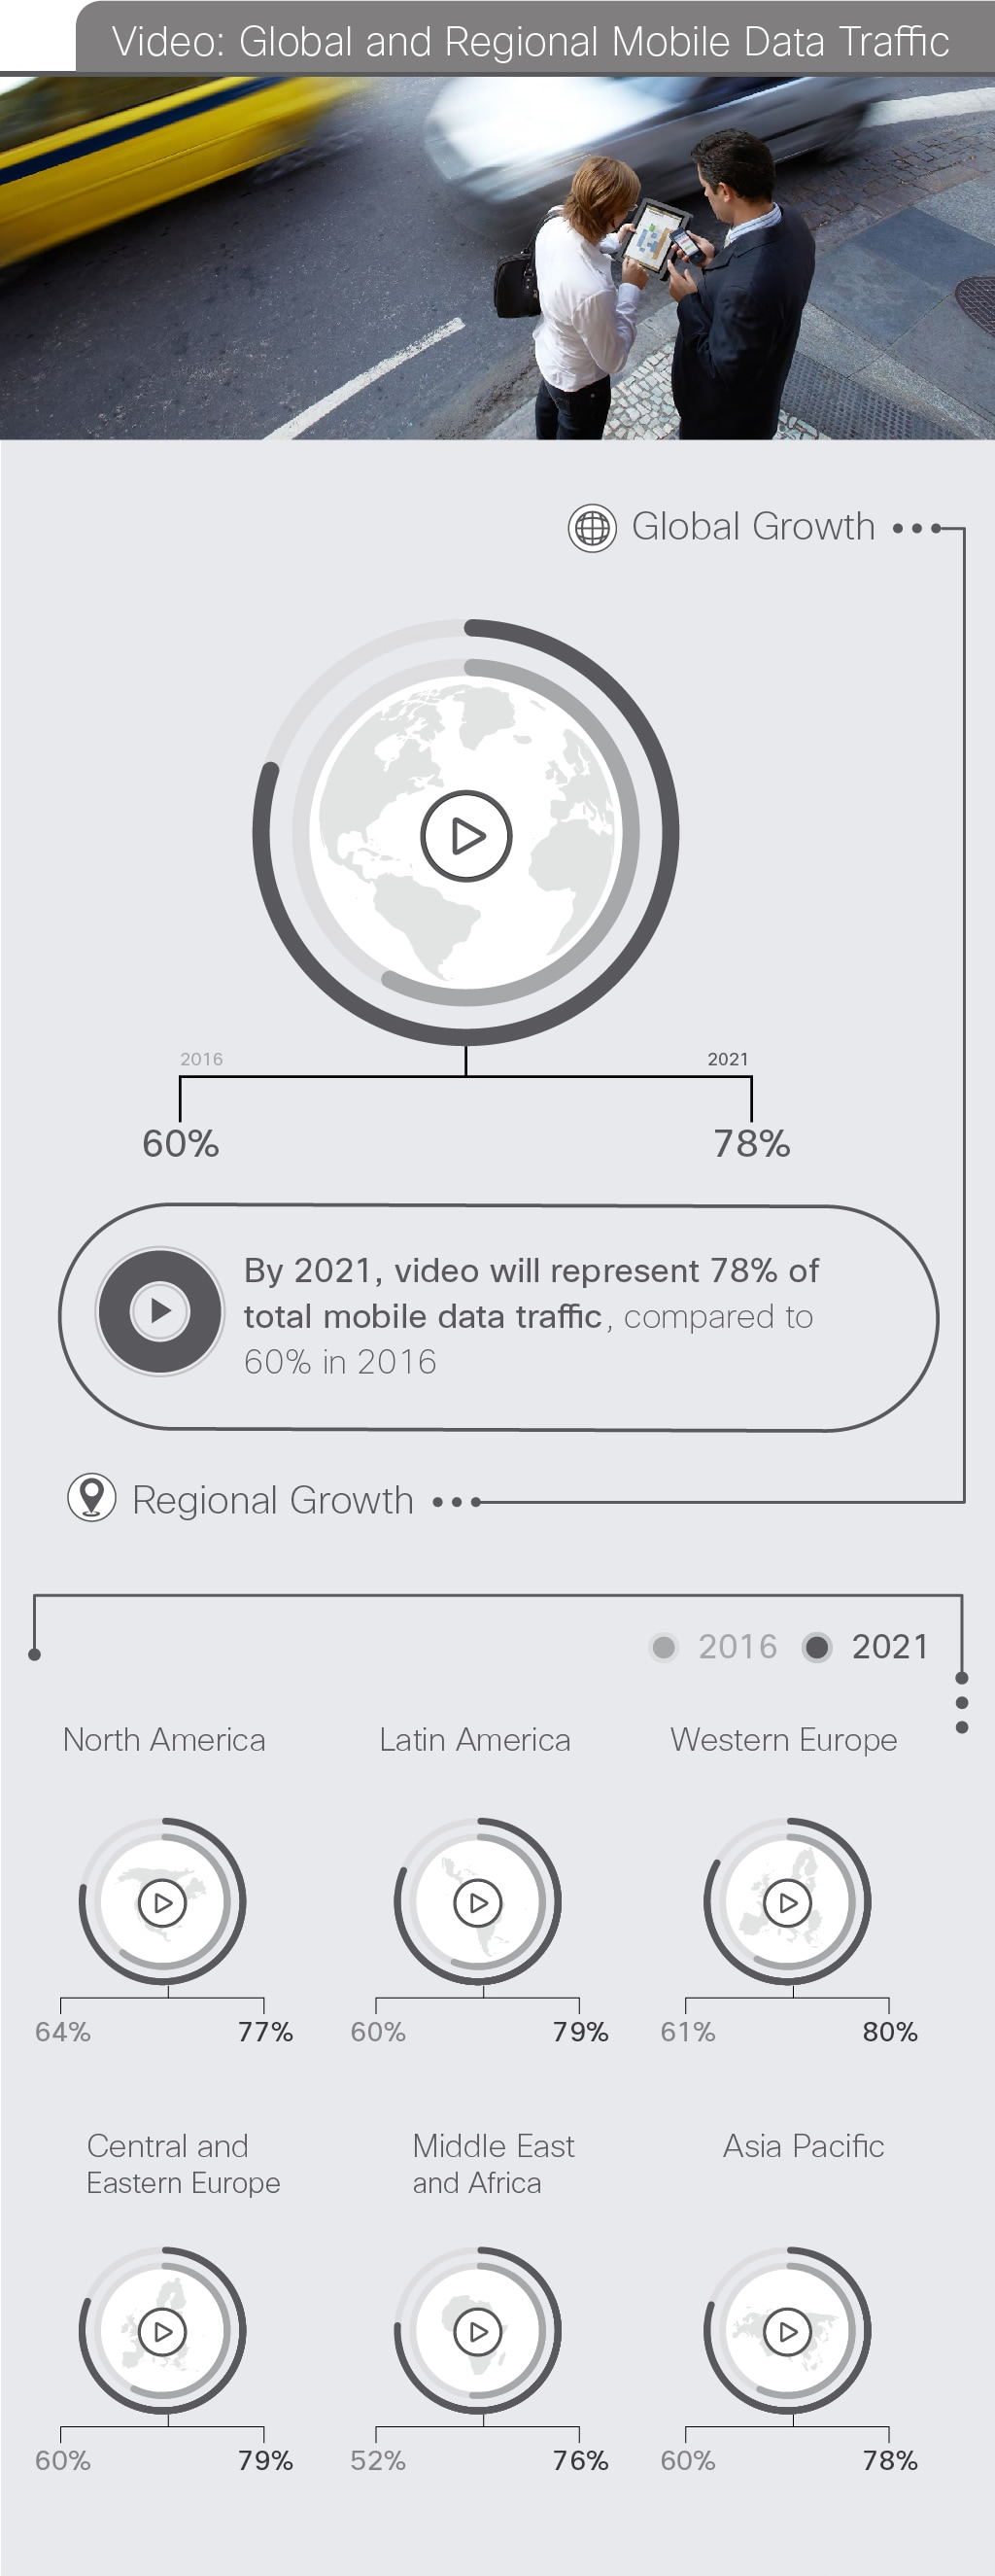 Video: Global and Regional Mobile Data Traffic